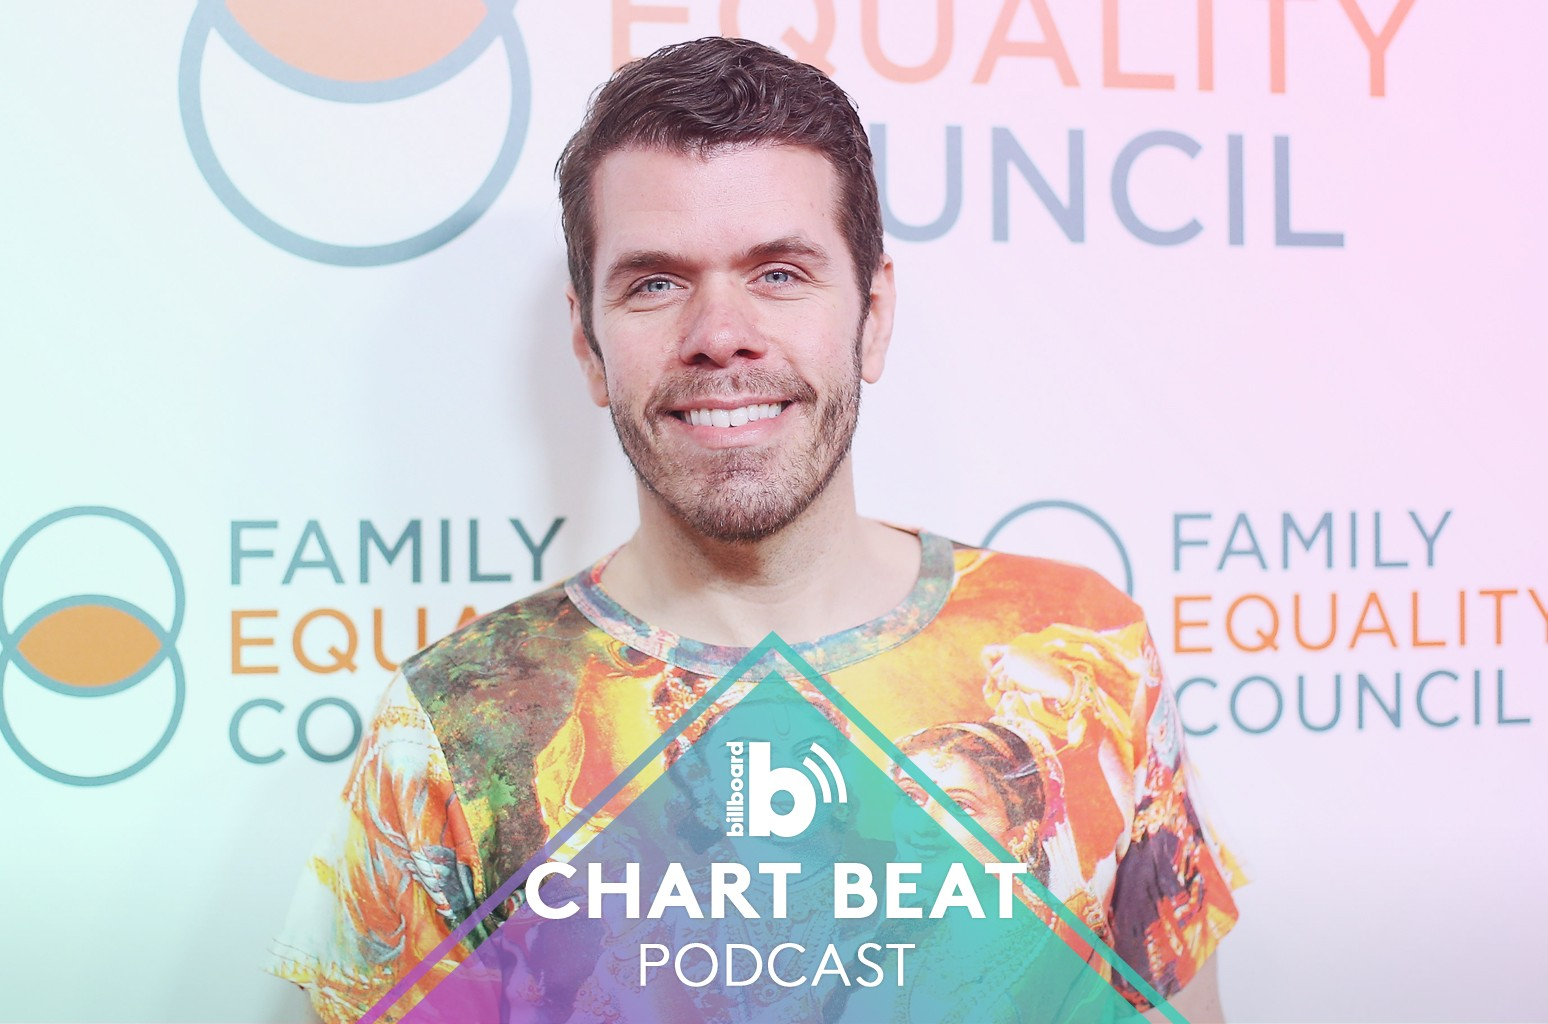 Chart Beat Podcast featuring: Perez Hilton